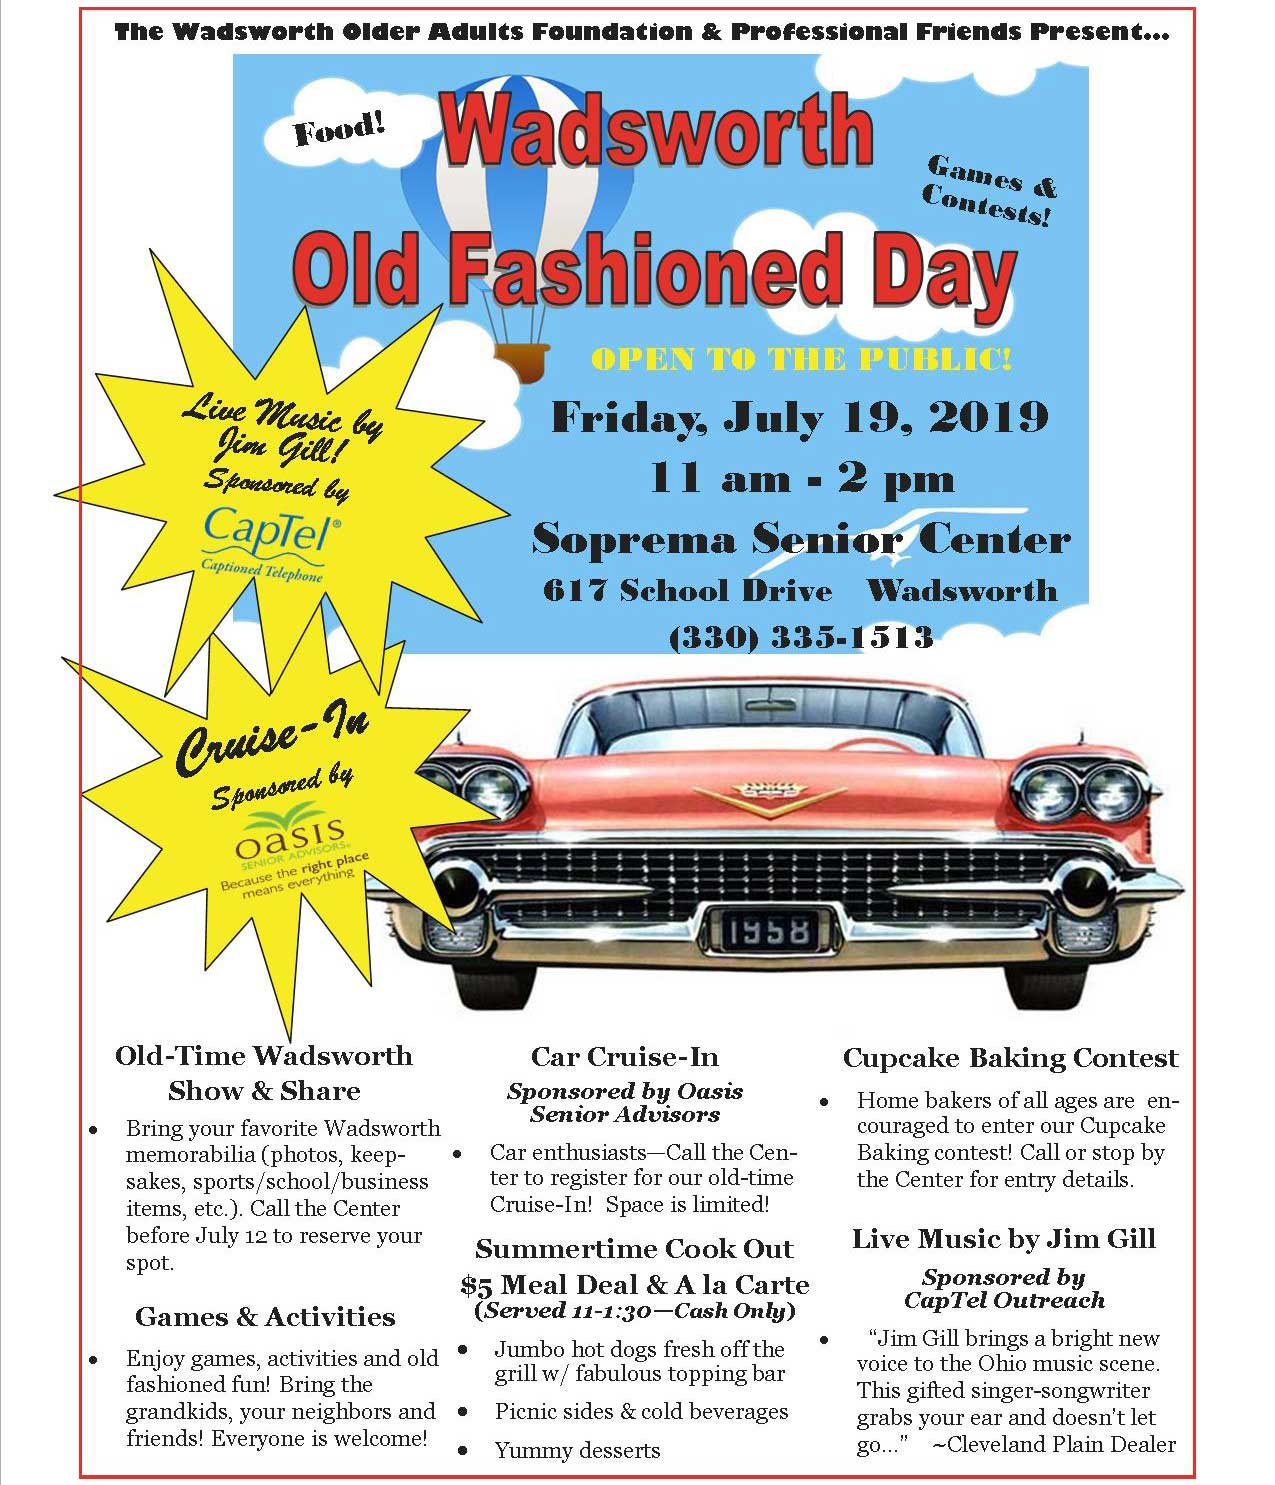 Wadsworth Old Fashioned Day 2019